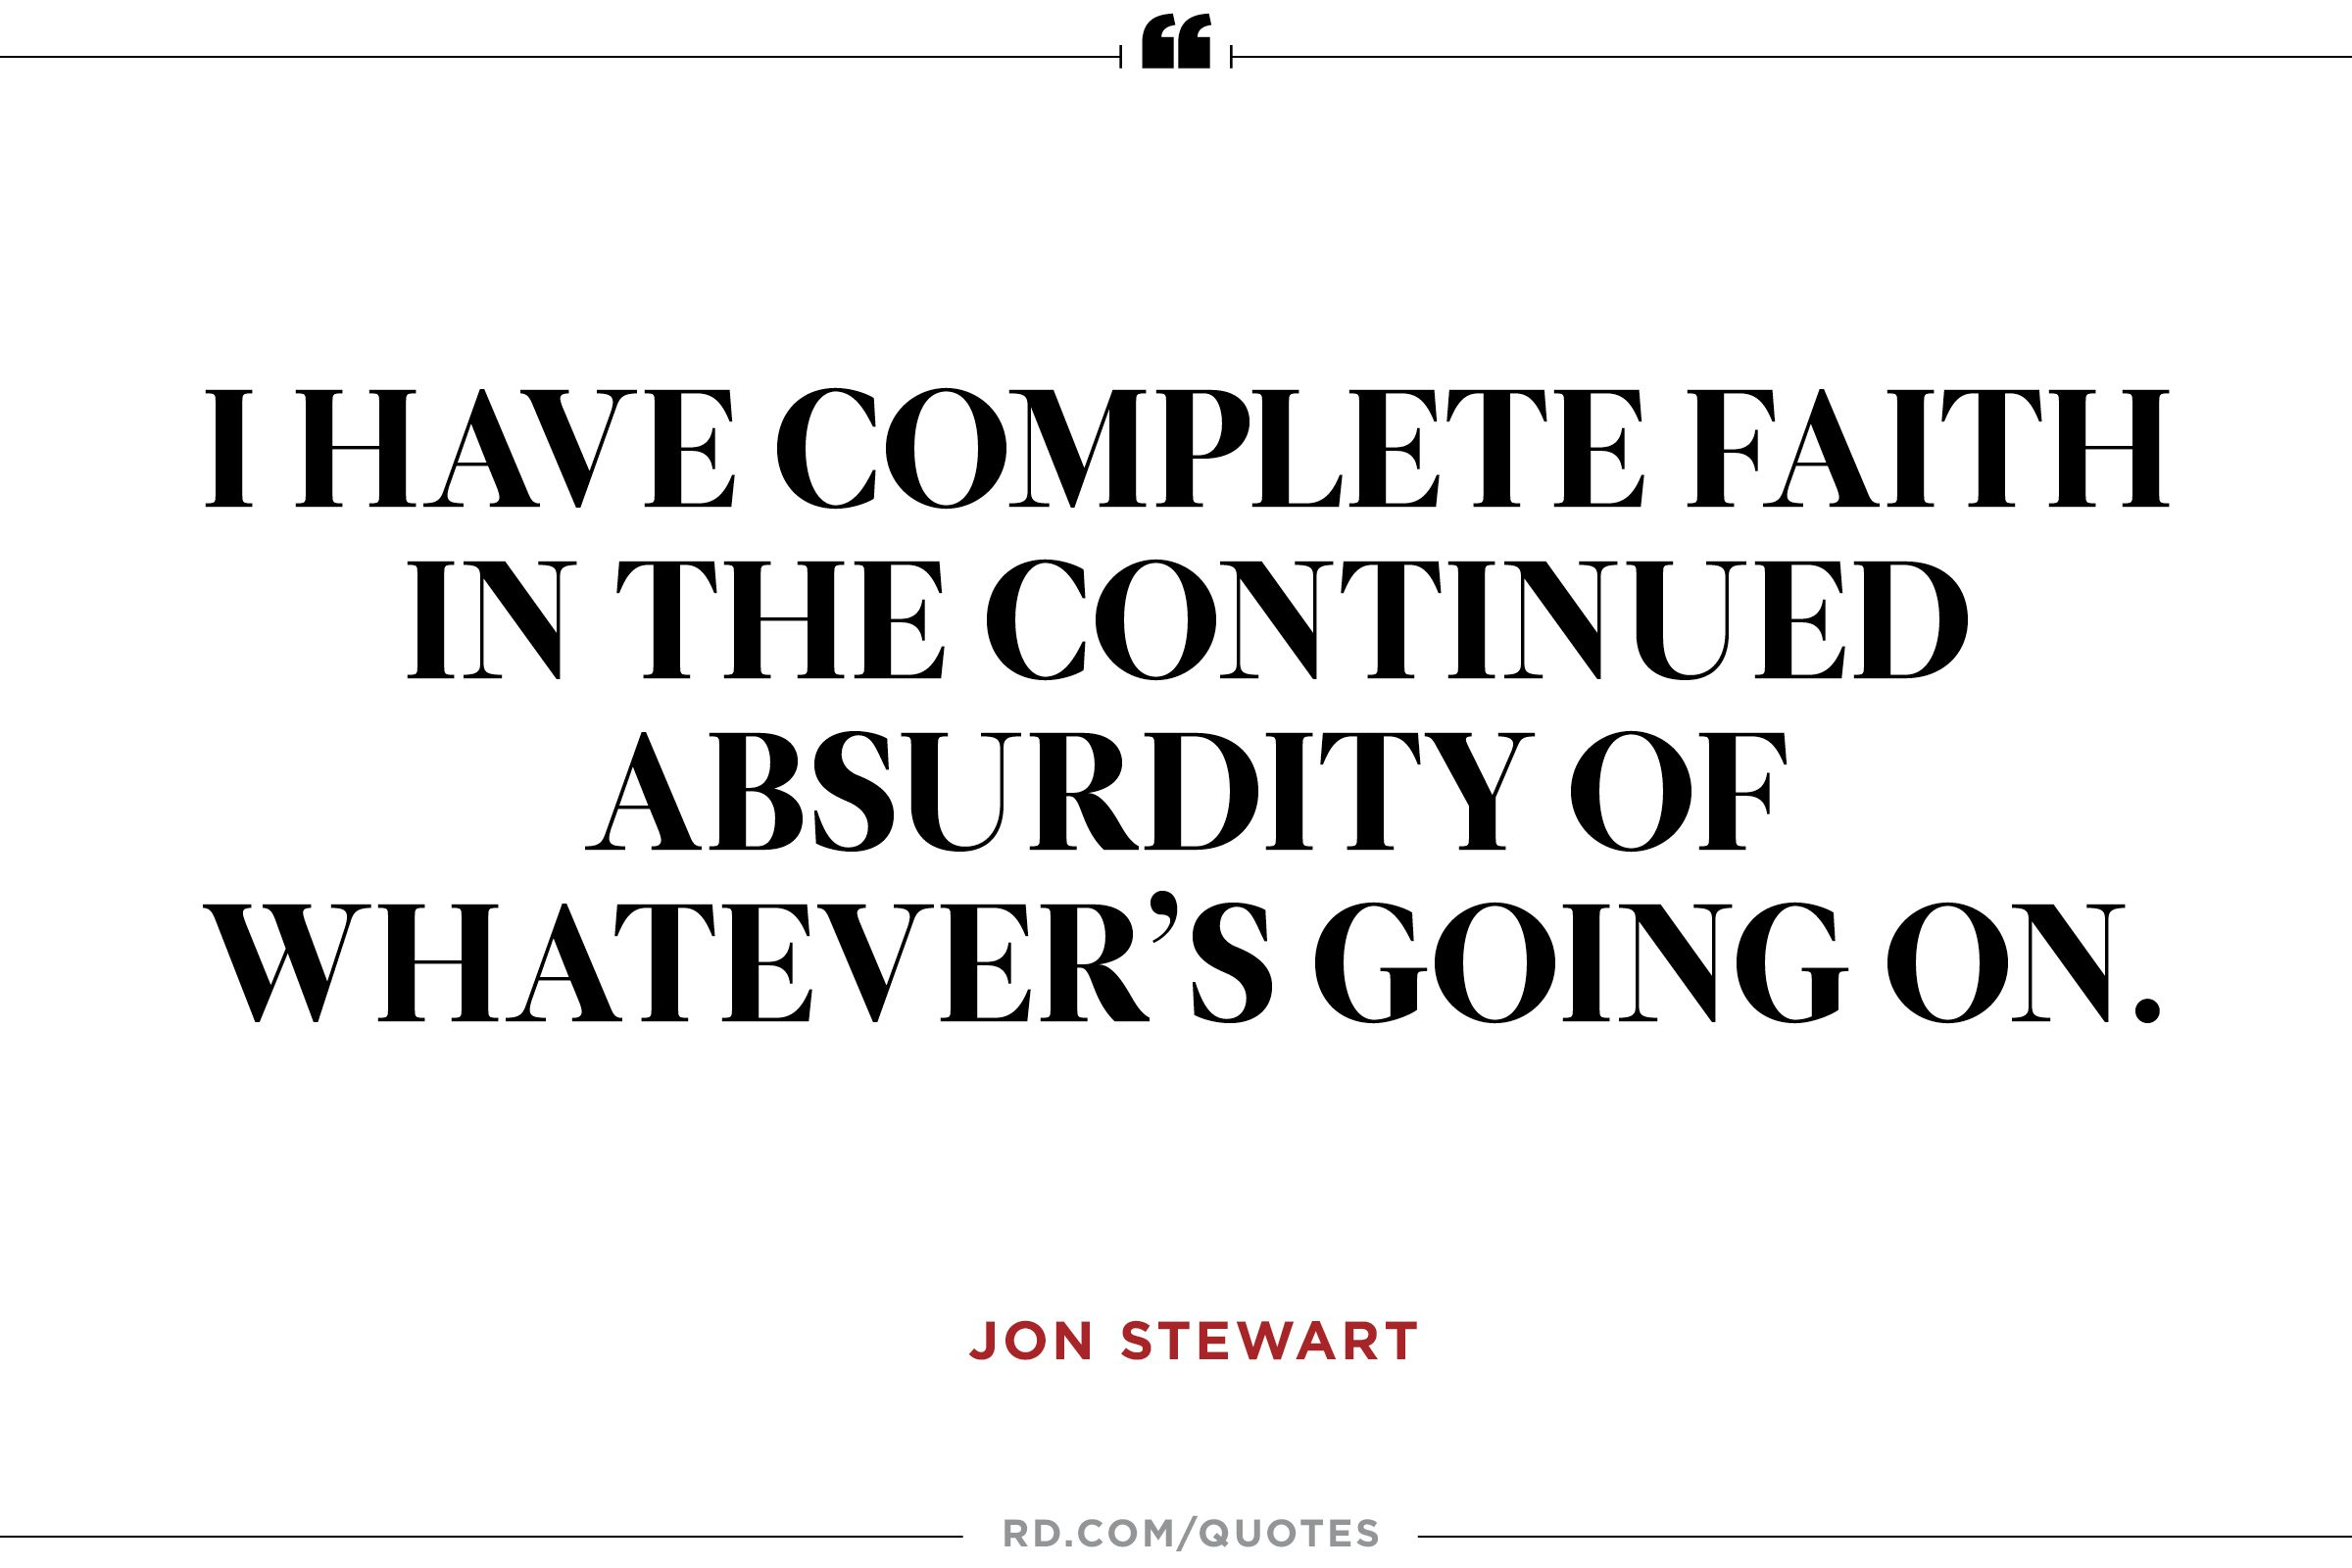 jon stewart quotes that reveal his wit and heart reader s digest jon stewart on job secruity